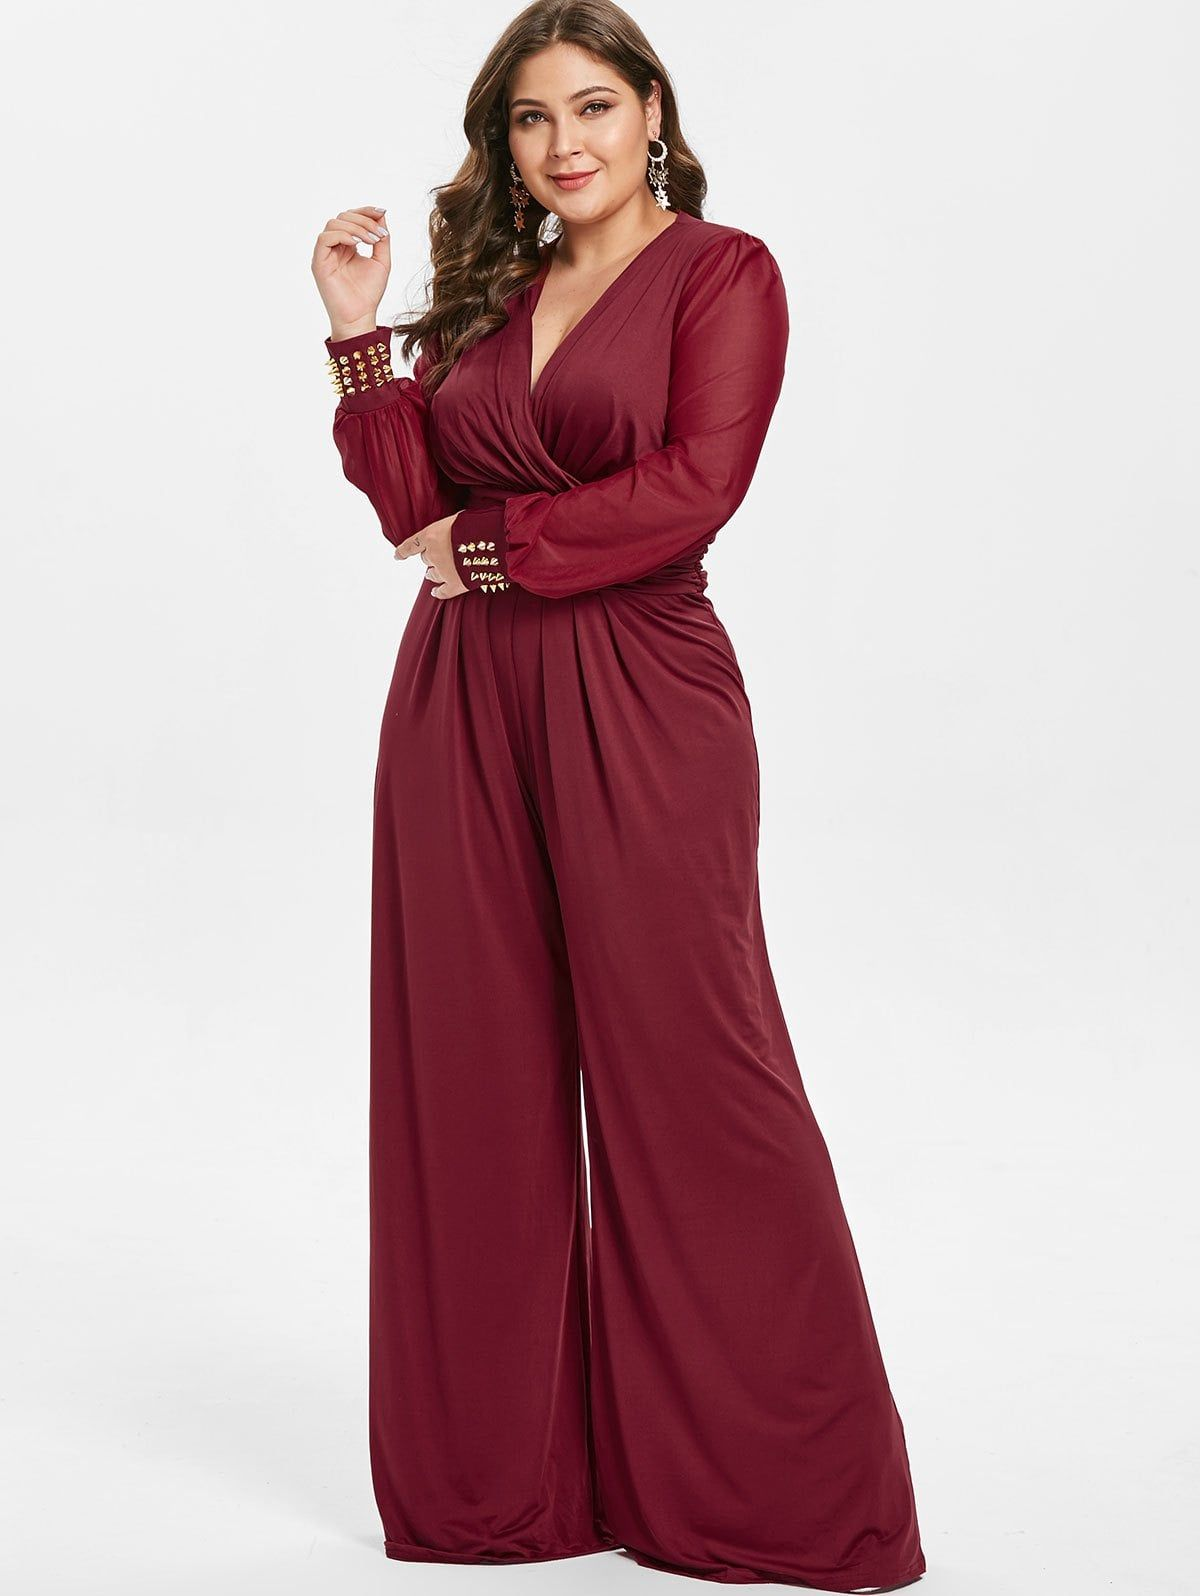 d2e3cacb6149 Plus Size Long Sleeves Surplice Jumpsuit with Rivets Spring jumpsuit long  cute rompers  Spring jumpsuit long spaghetti straps  Spring jumpsuit long  ...